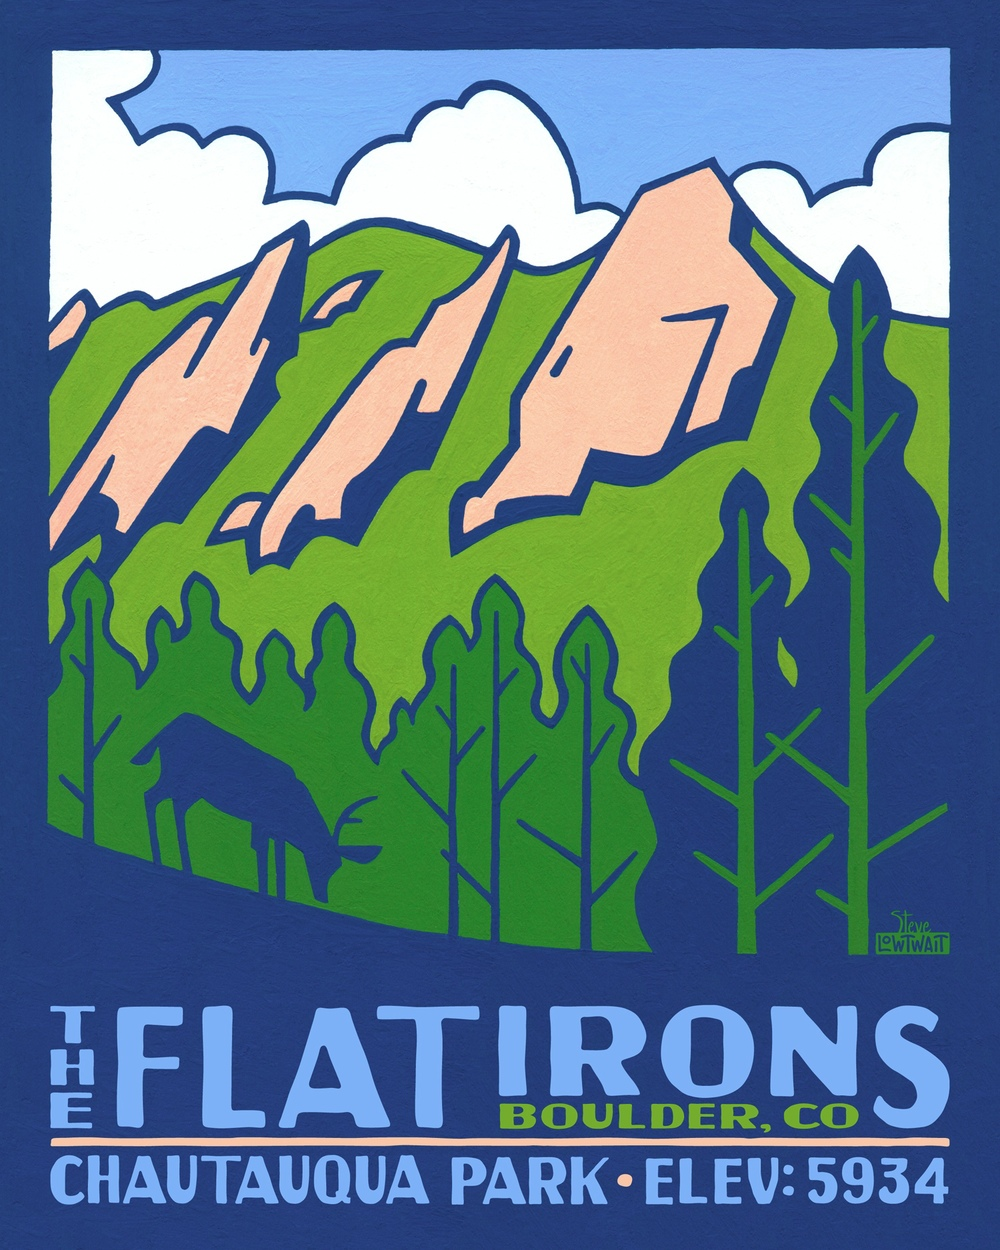 The Flatirons - Boulder, Colorado • Buy